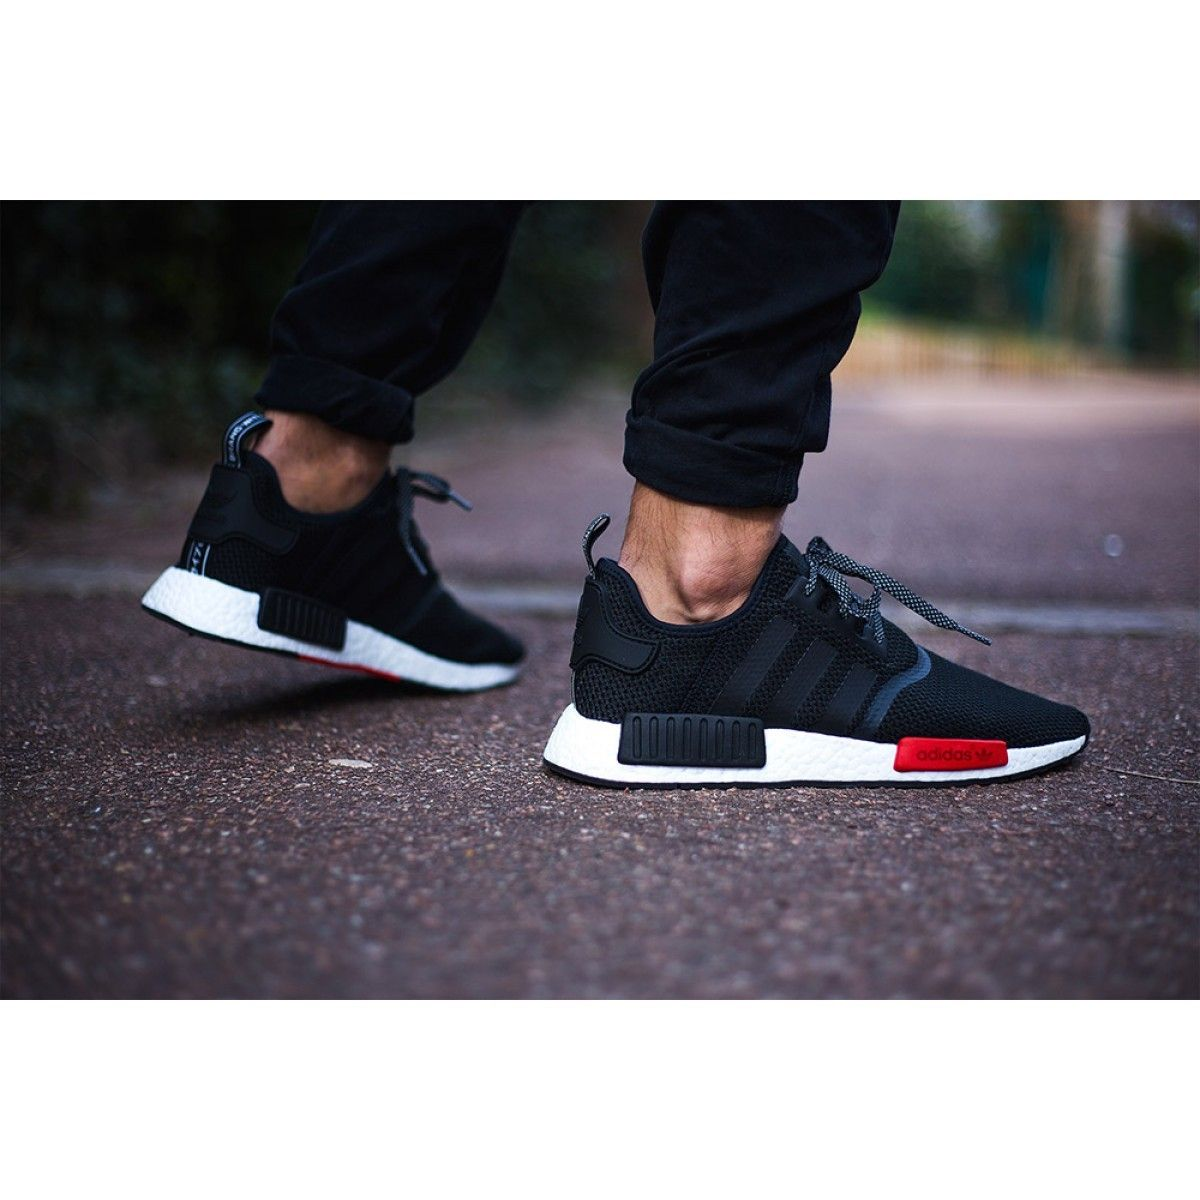 0cde228cd Adidas NMD R1 Footlocker Exclusive Black Red White AQ4498